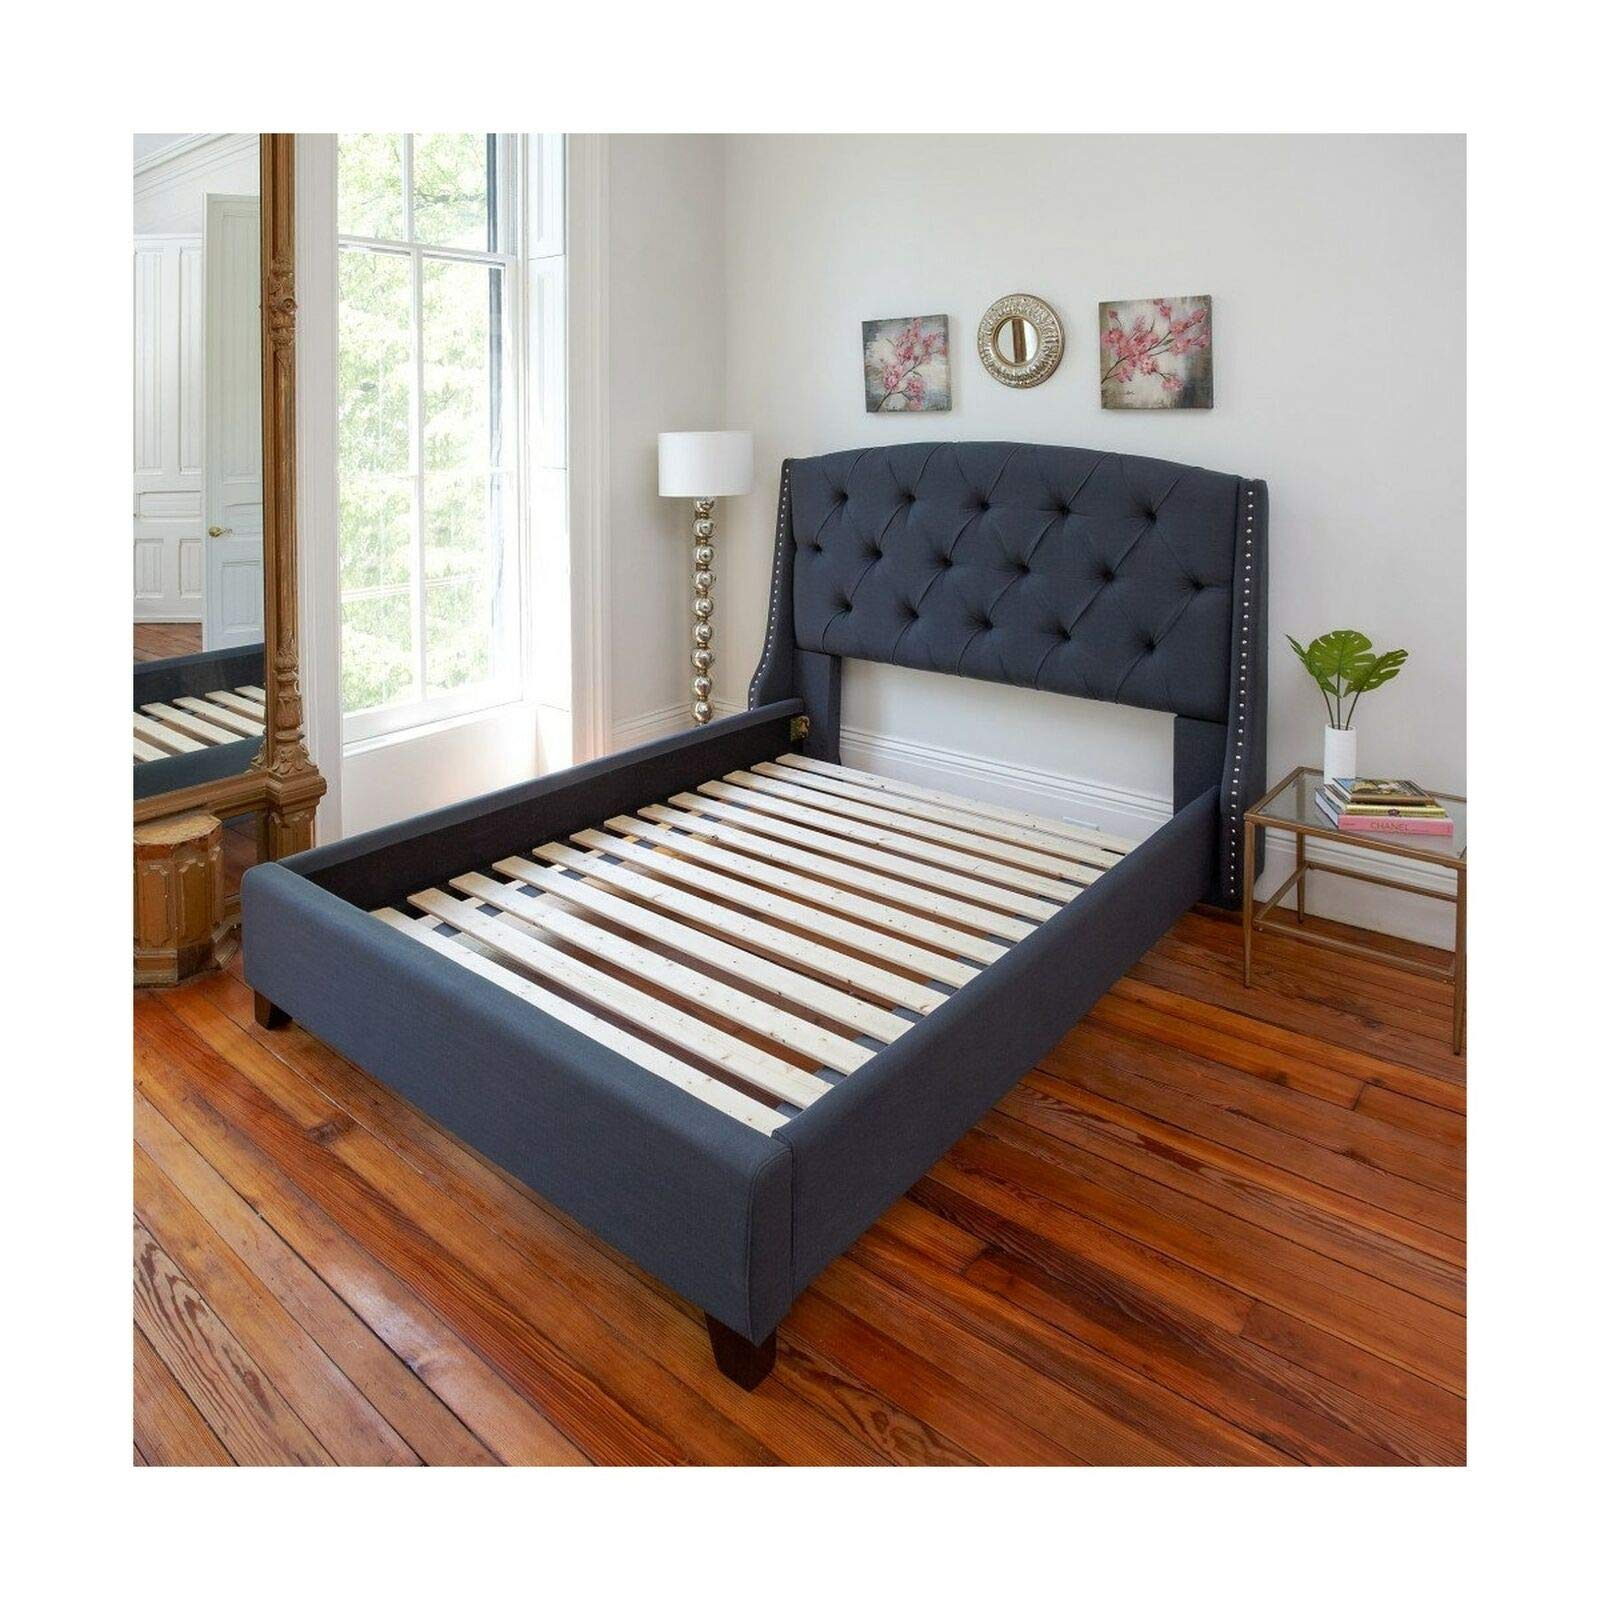 mewinshop Futuristic Queen Bed Classic Brands Heavy Duty Attached Solid Wood Bed Support Slats, 60'' W-Queen